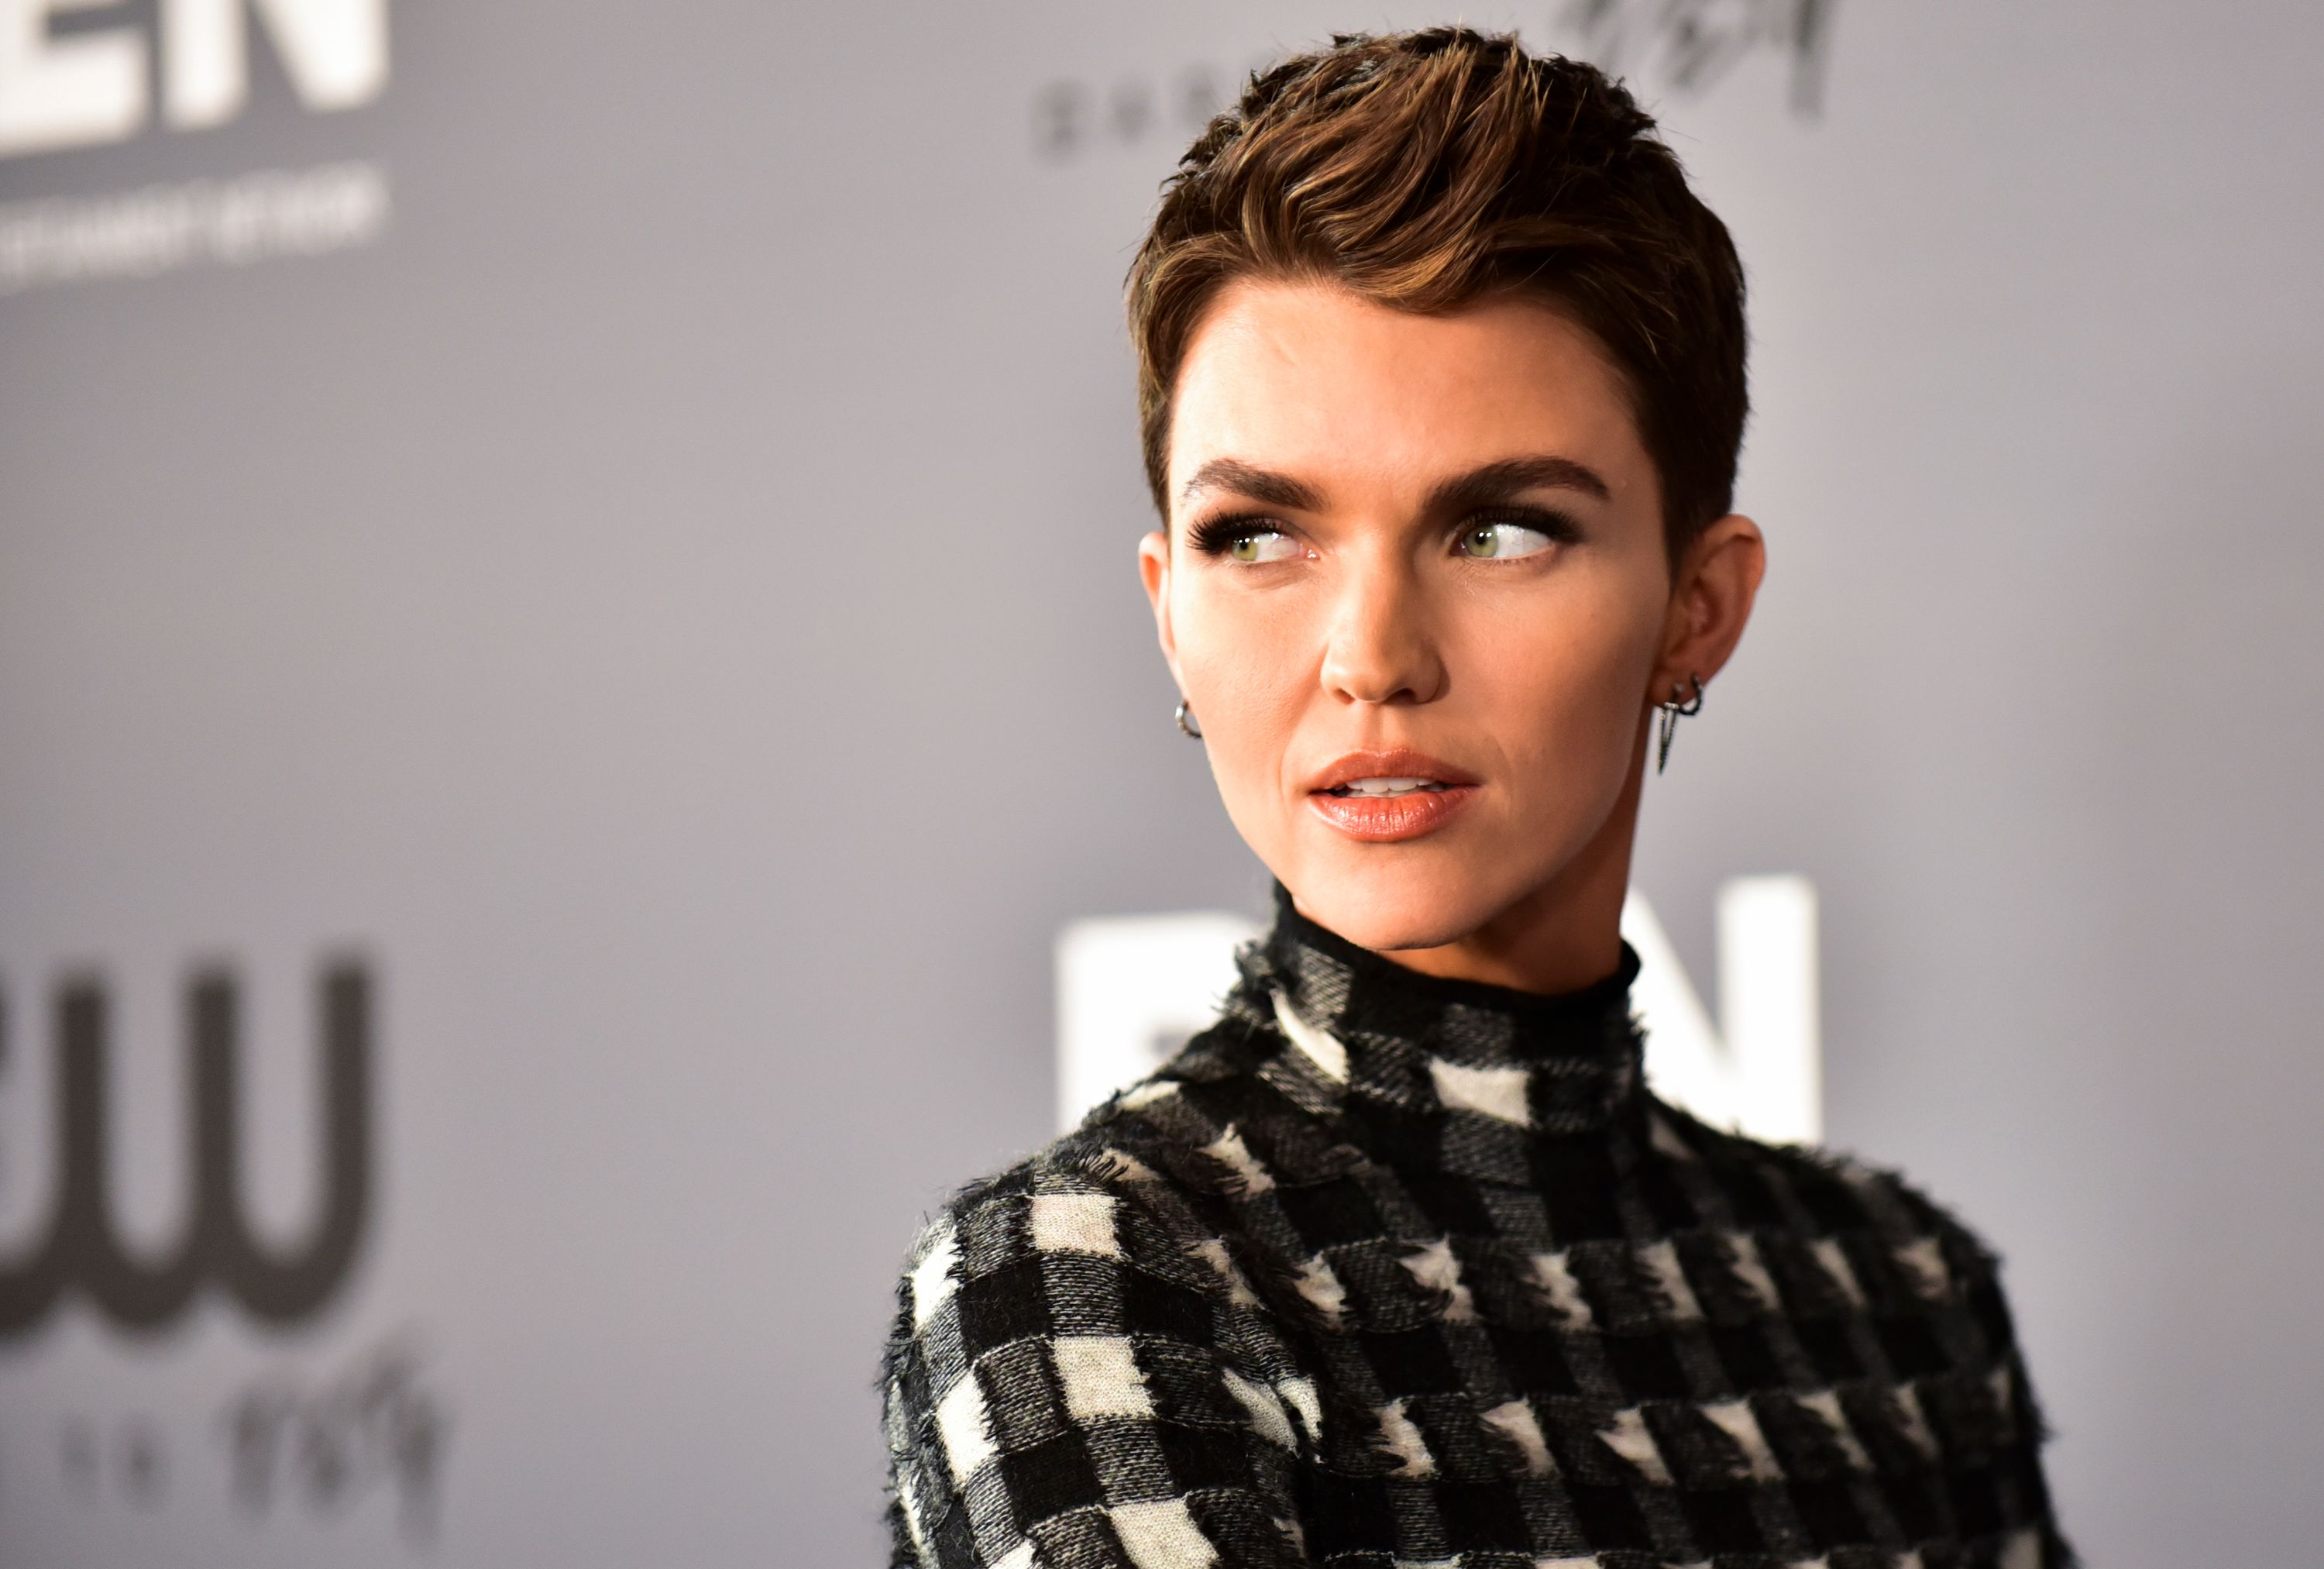 Ruby Rose poses for photographers